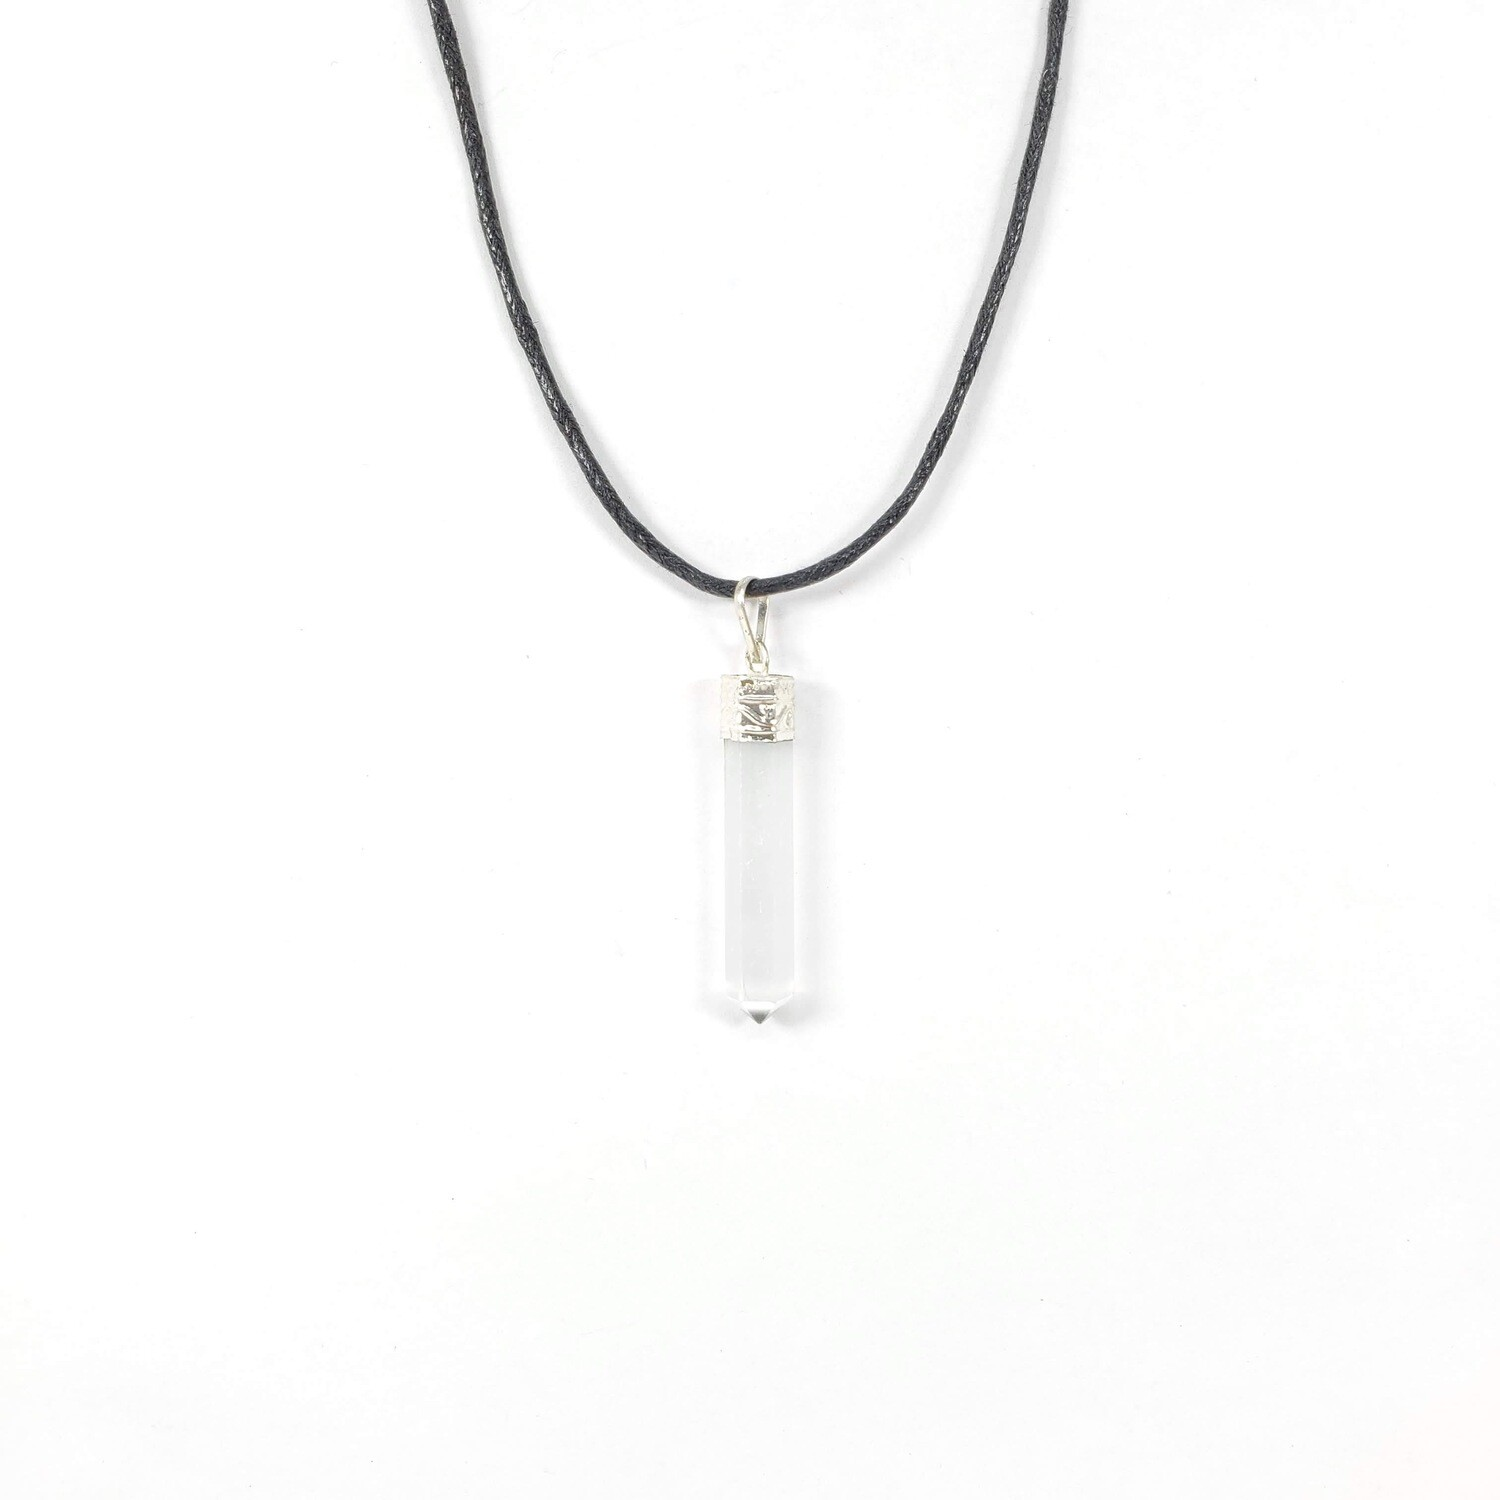 SELENITE PENCIL NECKLACE